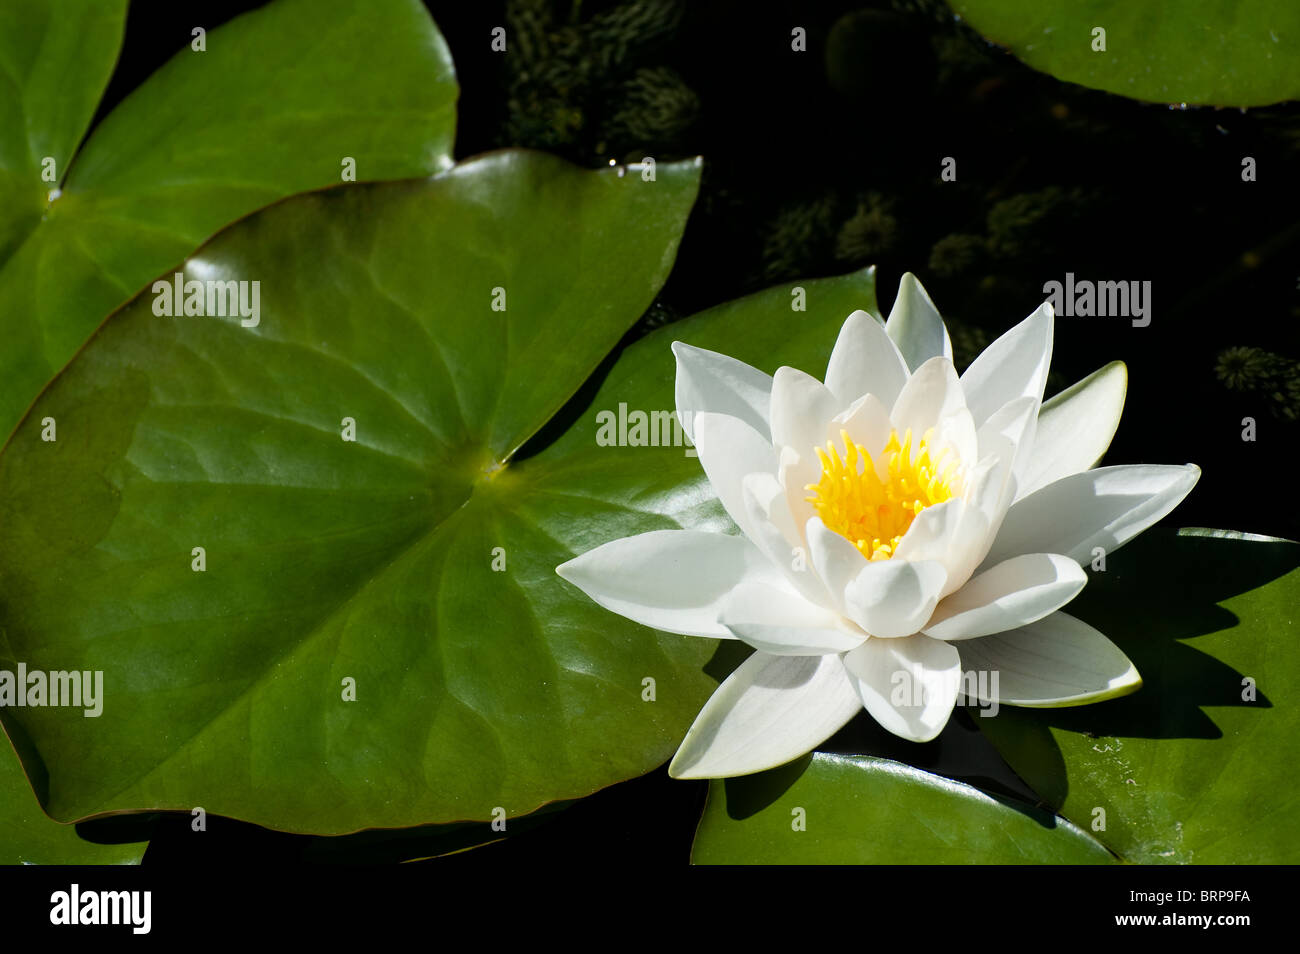 Green lily pads with white flowers stock photos green lily pads pretty white water lily flowers amongst lily pads in a pond stock image izmirmasajfo